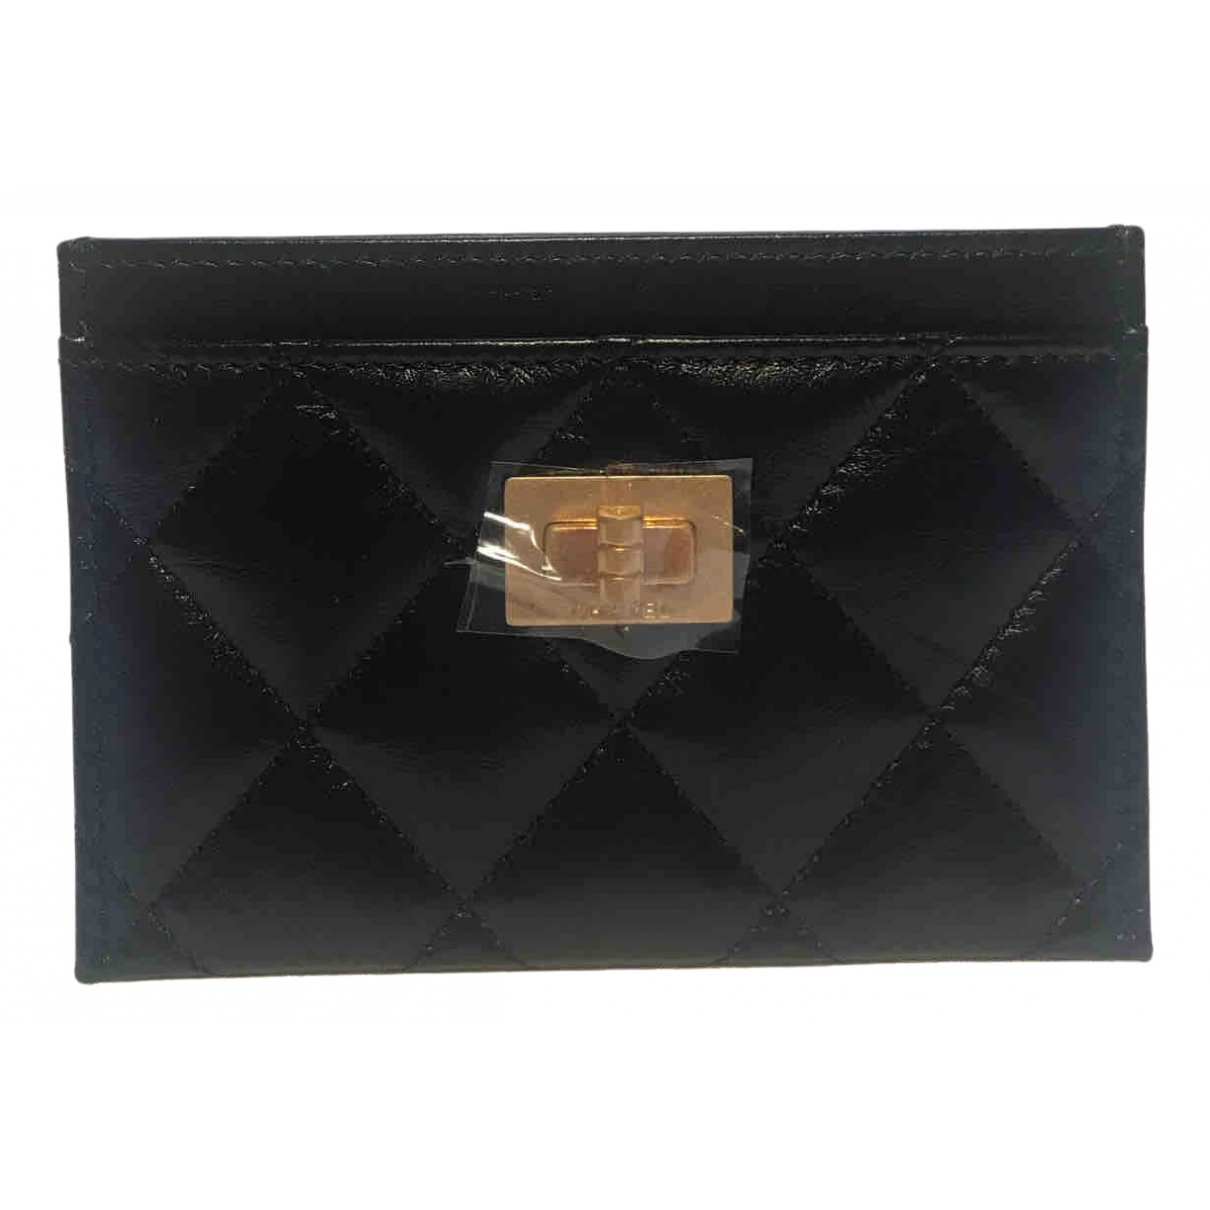 Chanel 2.55 Black Leather Purses, wallet & cases for Women N